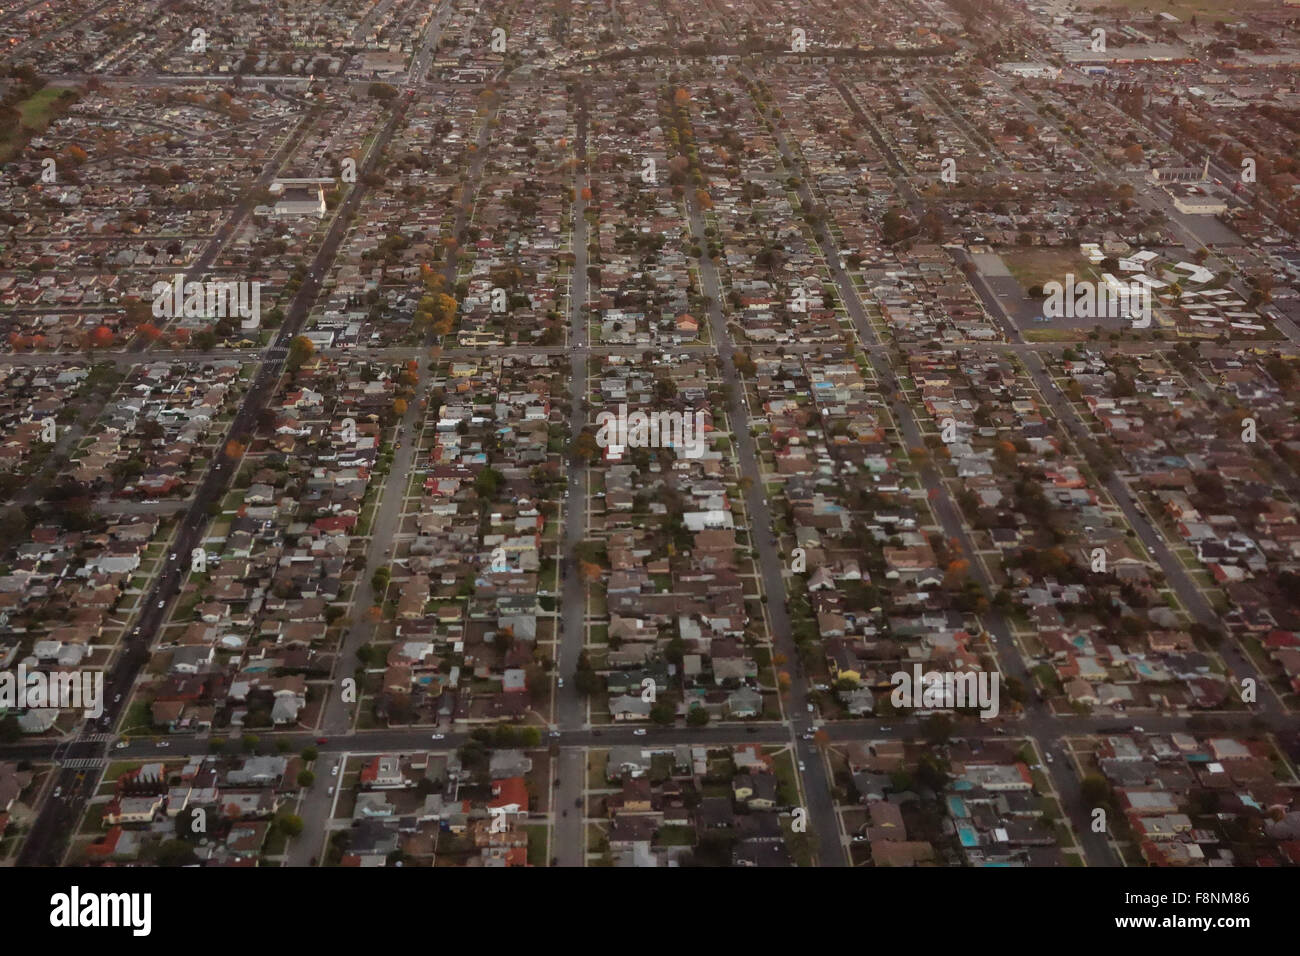 urban sprawl of city Los Angeles from the air Southern California USA - Stock Image